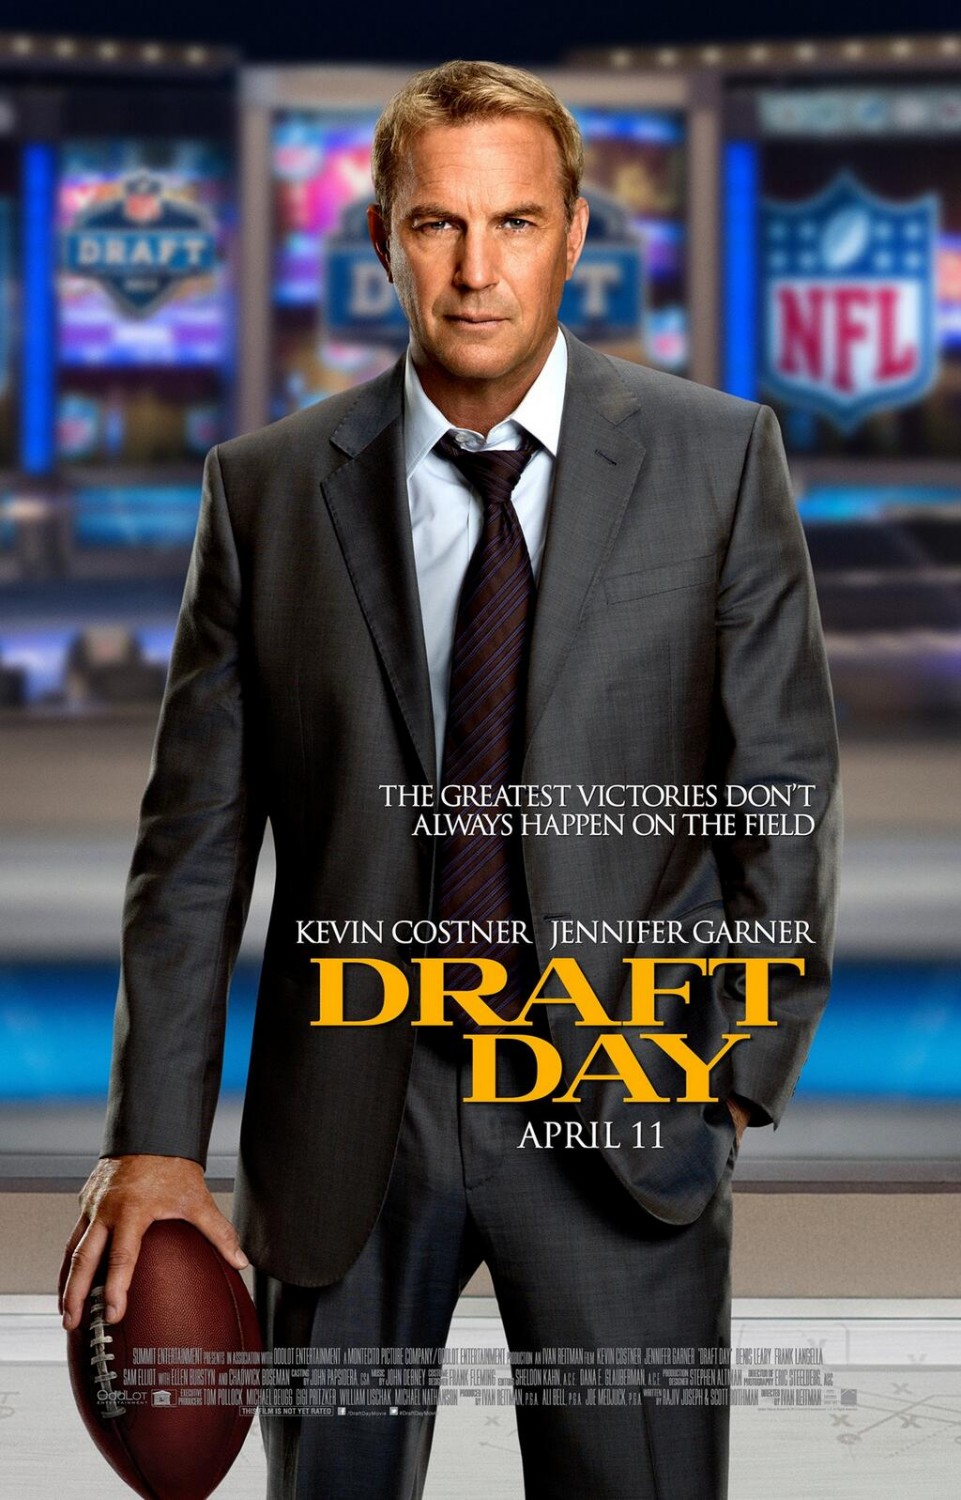 Draft Day-Official Poster Banner PROMO POSTER XLG-26DEZEMBRO2013